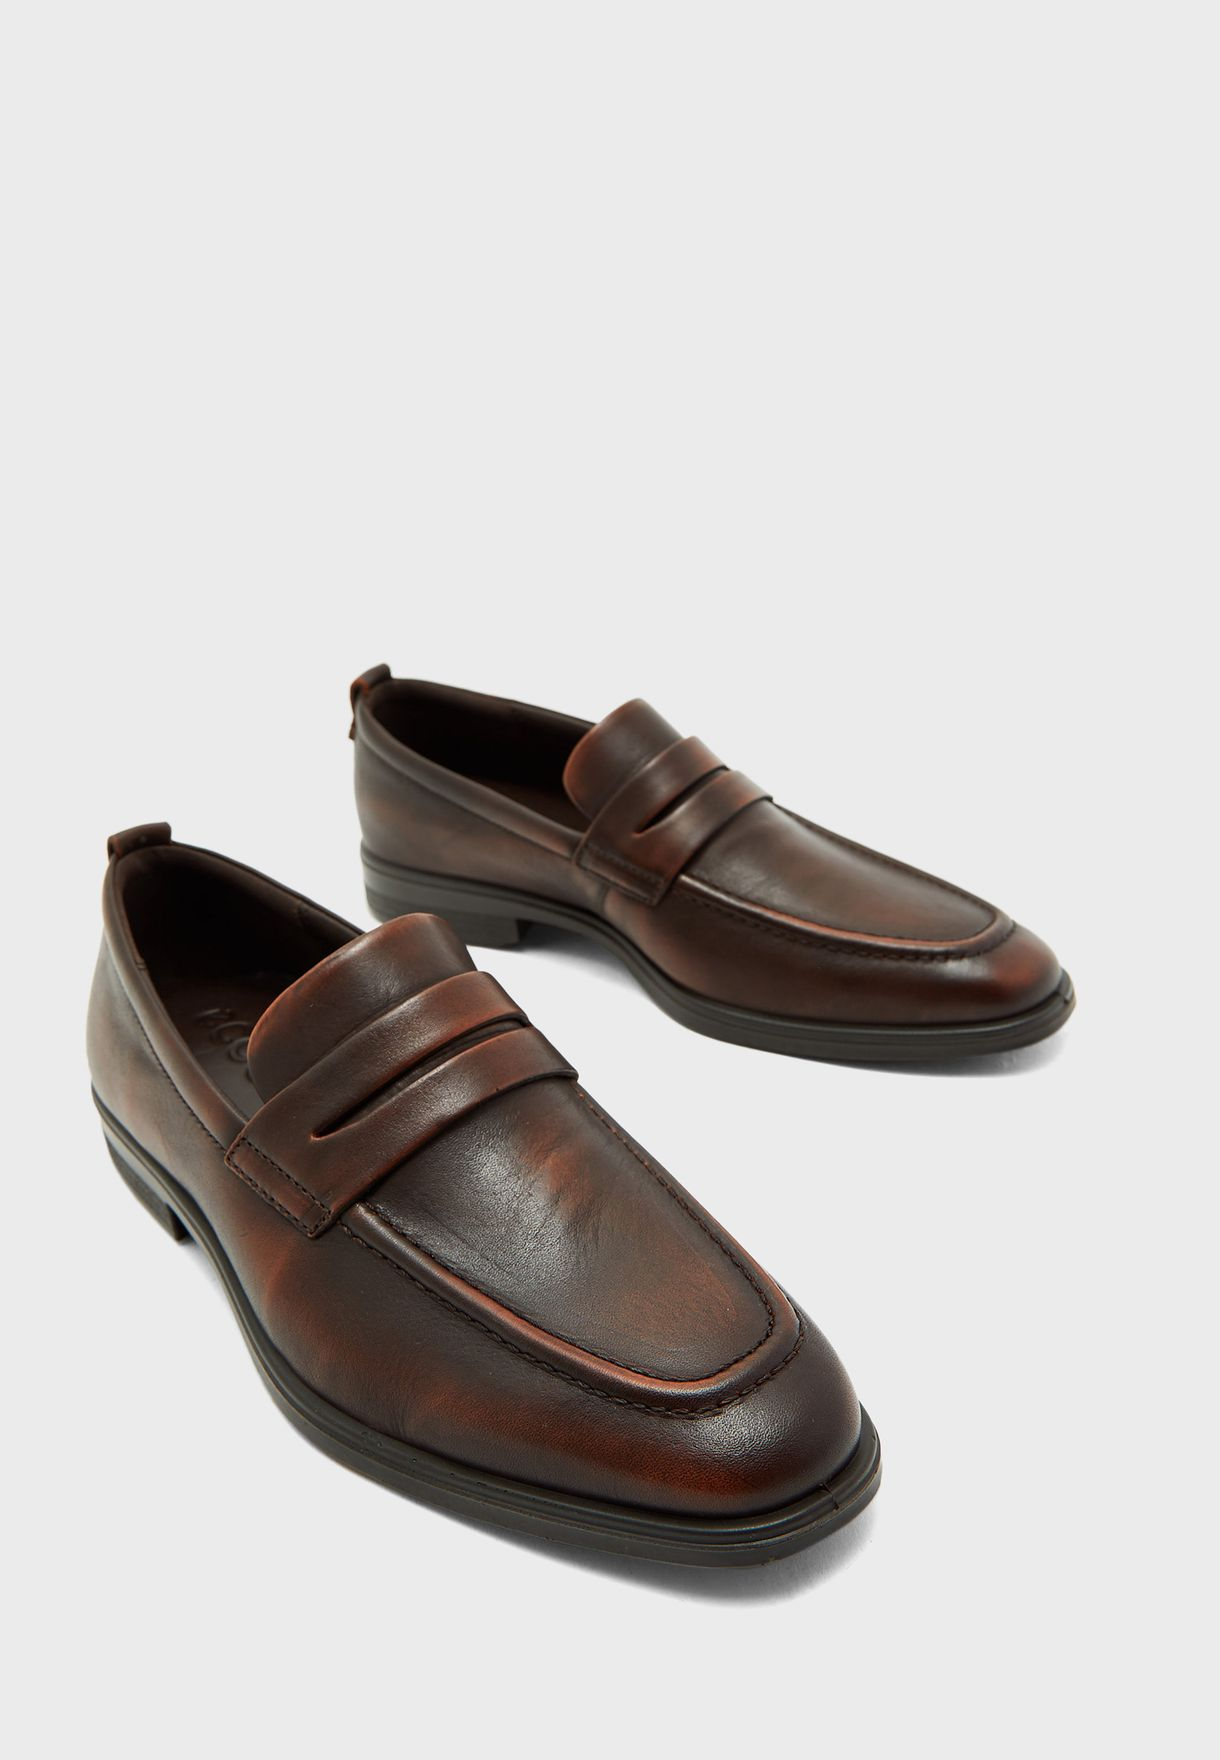 Melbourne Penny Loafers